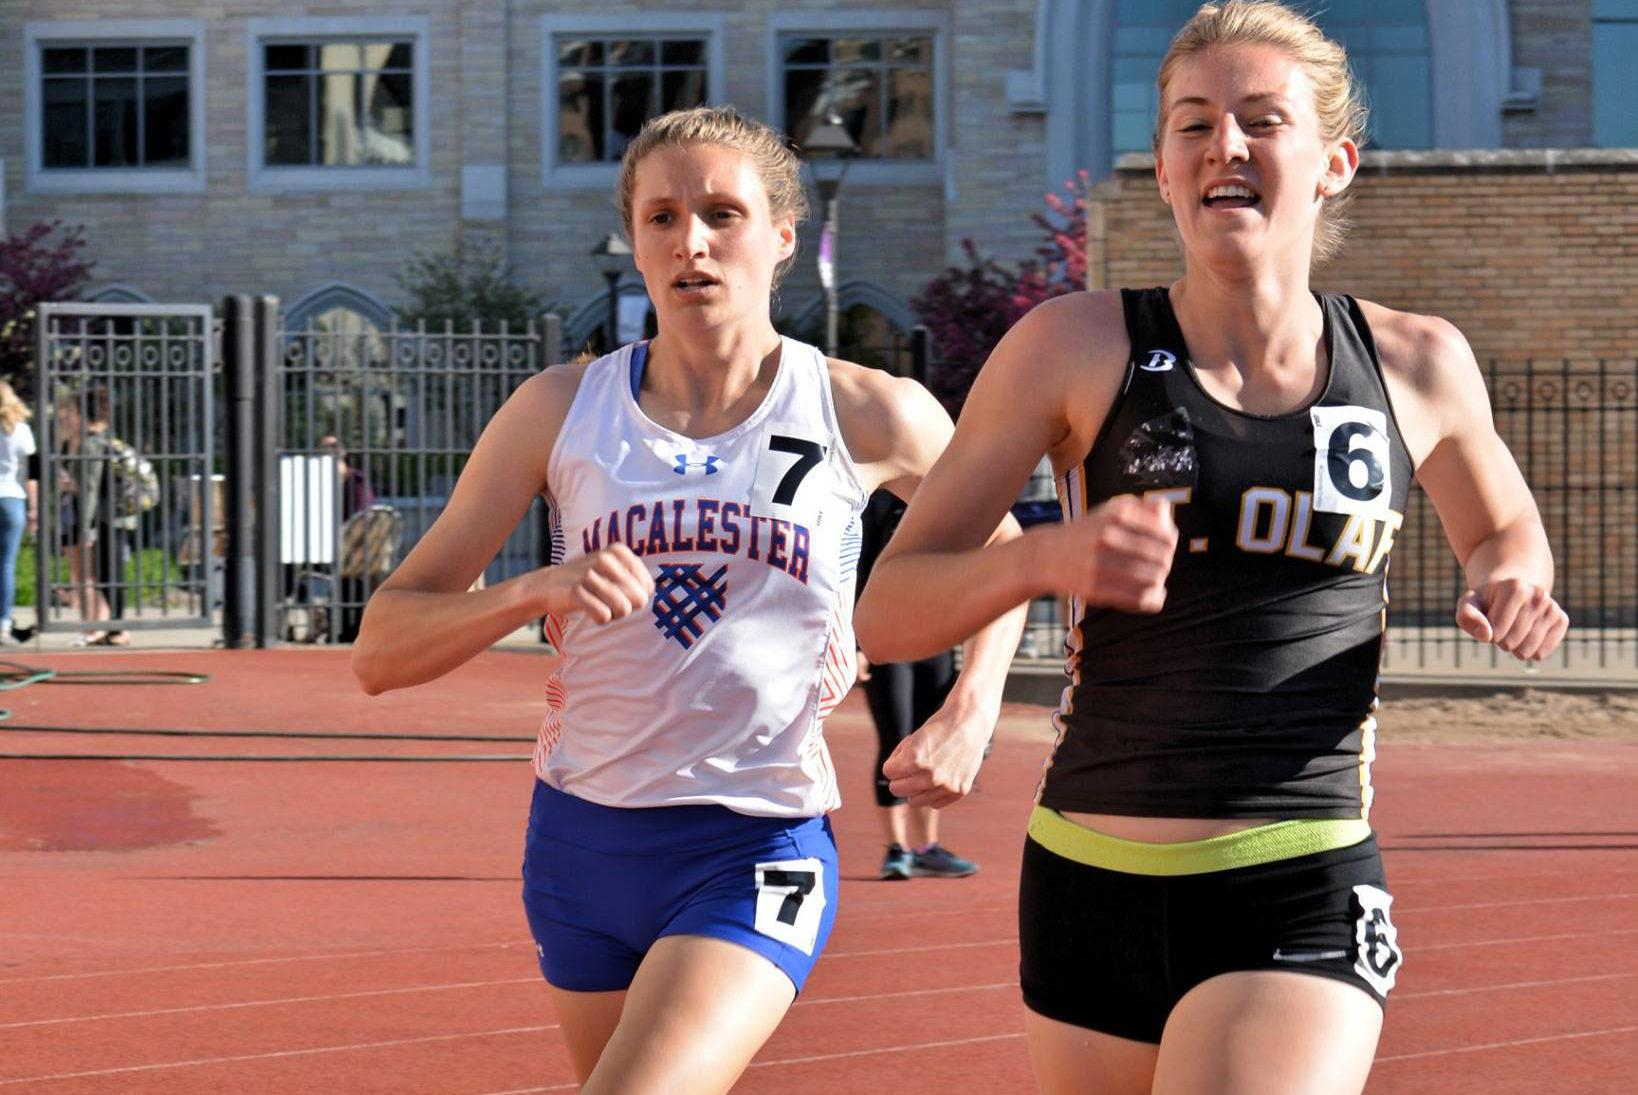 Assistant Women's Cross Country Coach Sarah Jonathan '16 holds Macalester's record for the 3,000m steeplechase. Photos courtesy of Sarah Jonathan '16.